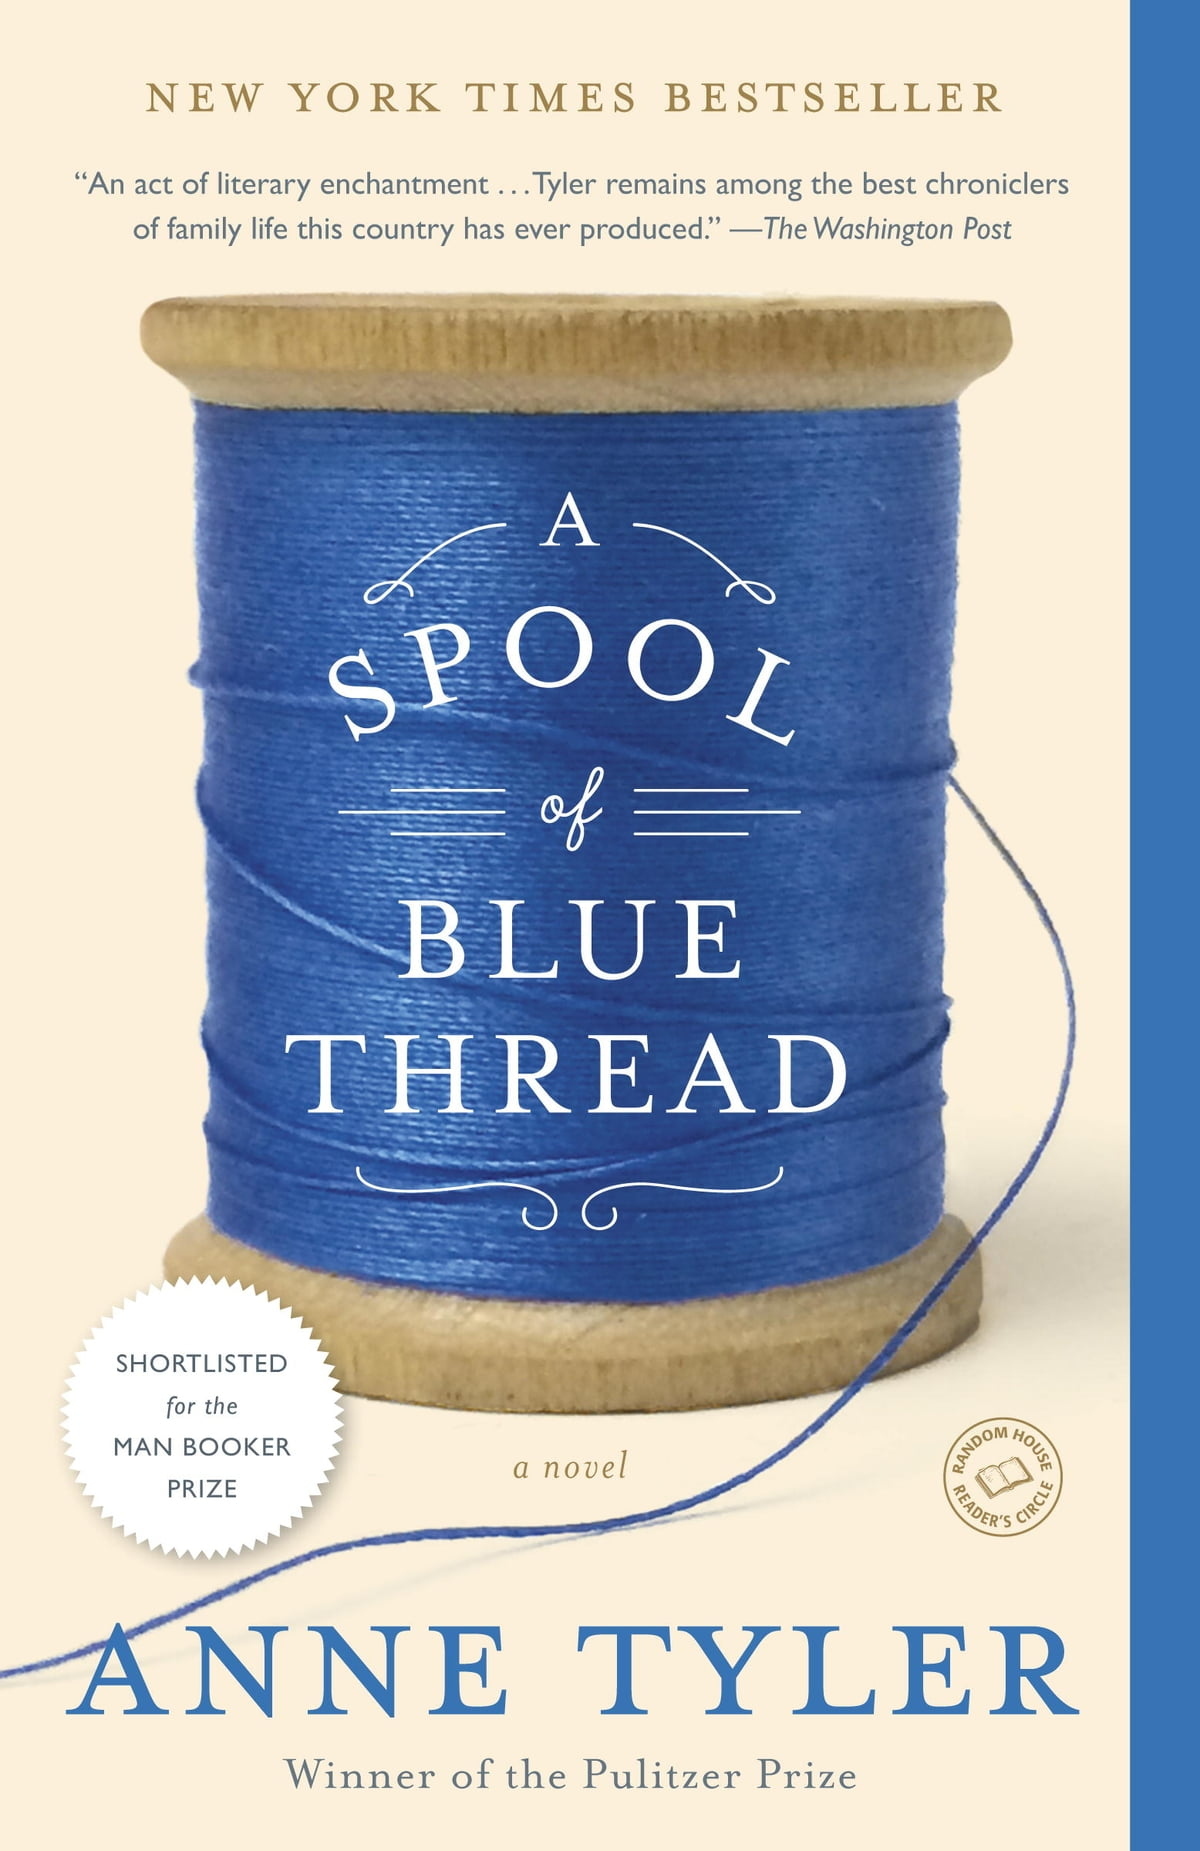 A Spool Of Blue Thread Ebook By Anne Tyler  9781101874288  Rakuten Kobo